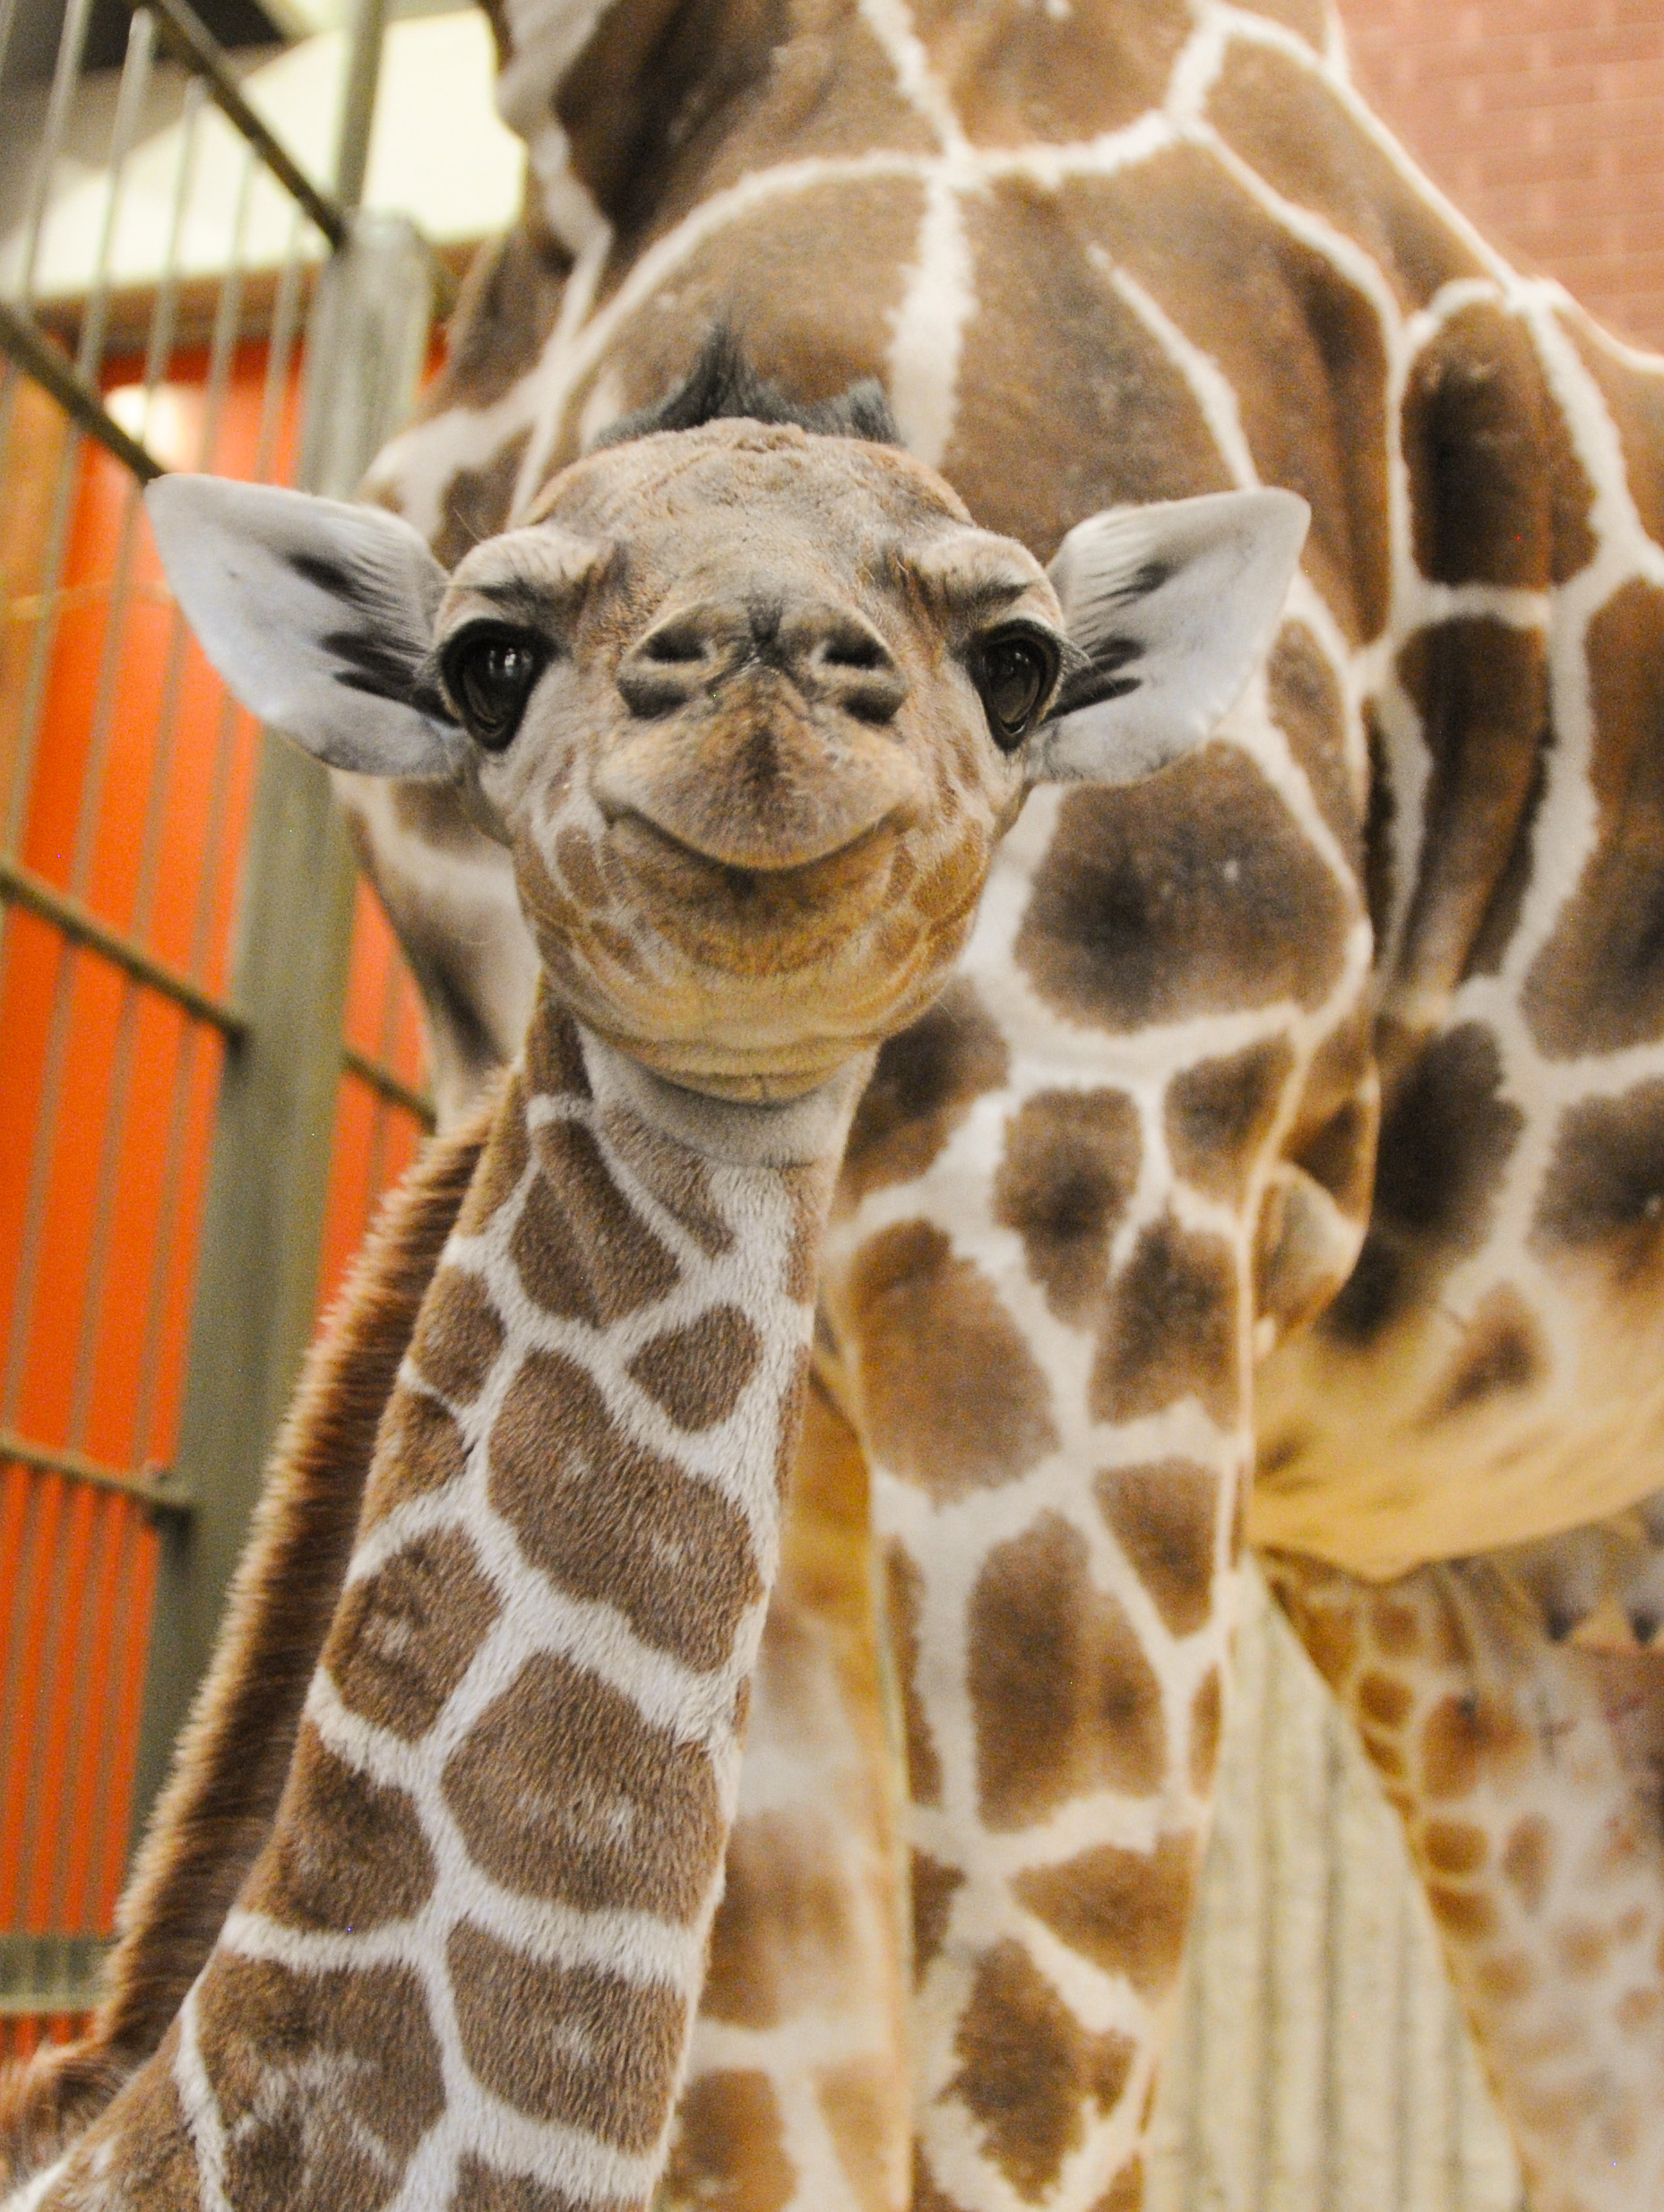 Baby giraffe Dobby was born at the Denver Zoo on Feb. 28, 2017.